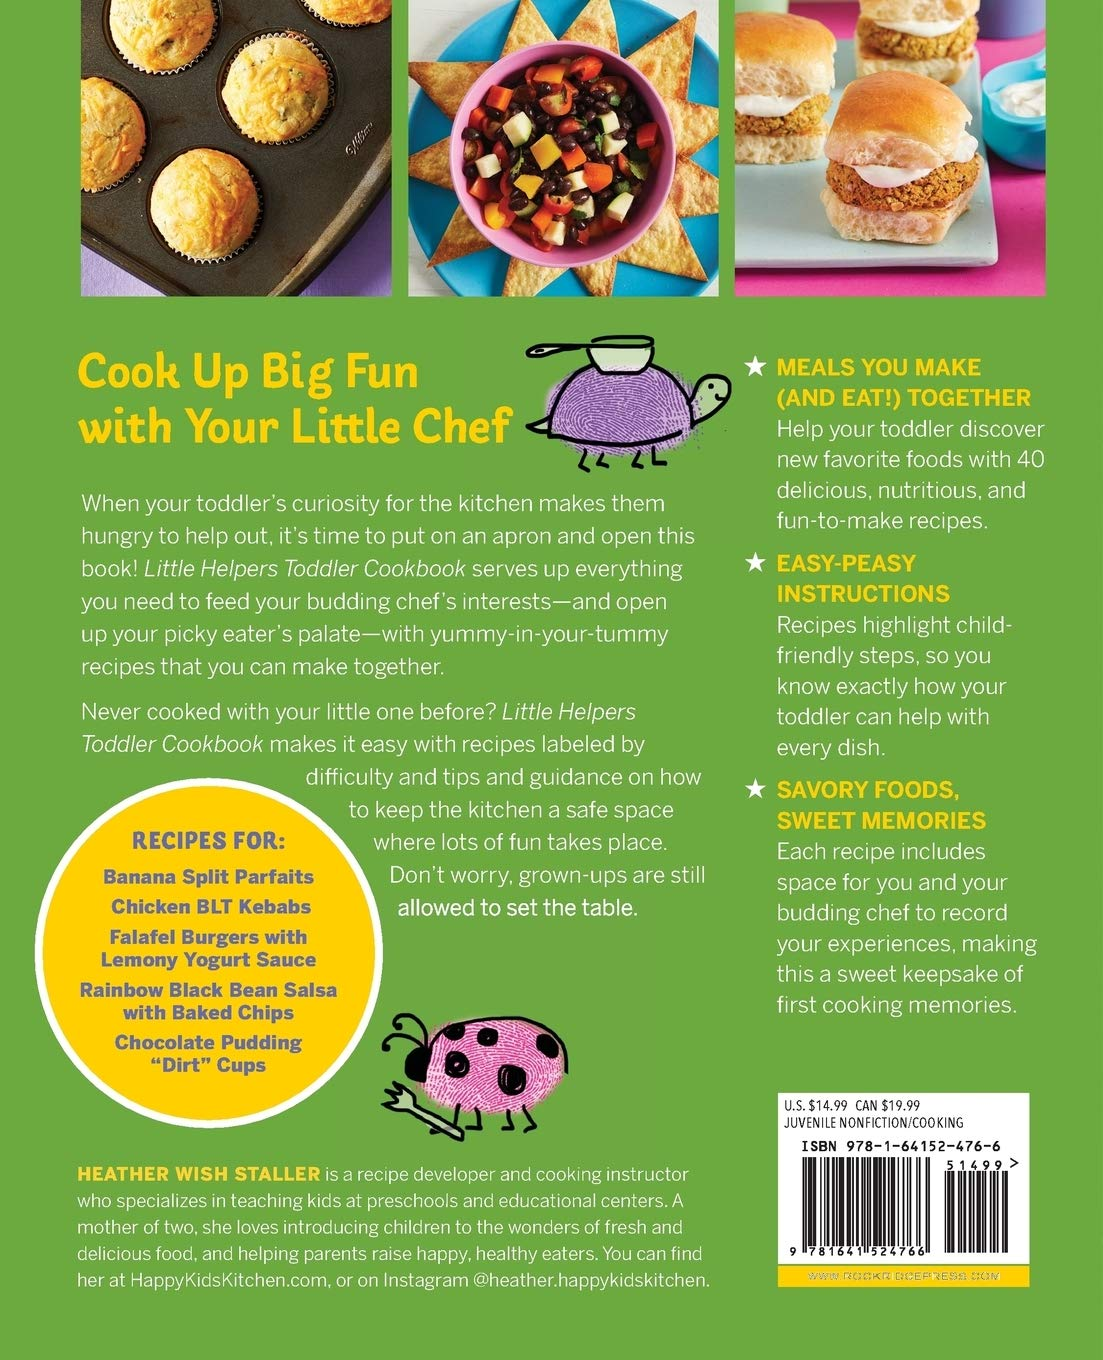 Little Helpers Toddler Cookbook Healthy, Kid Friendly Recipes to ...